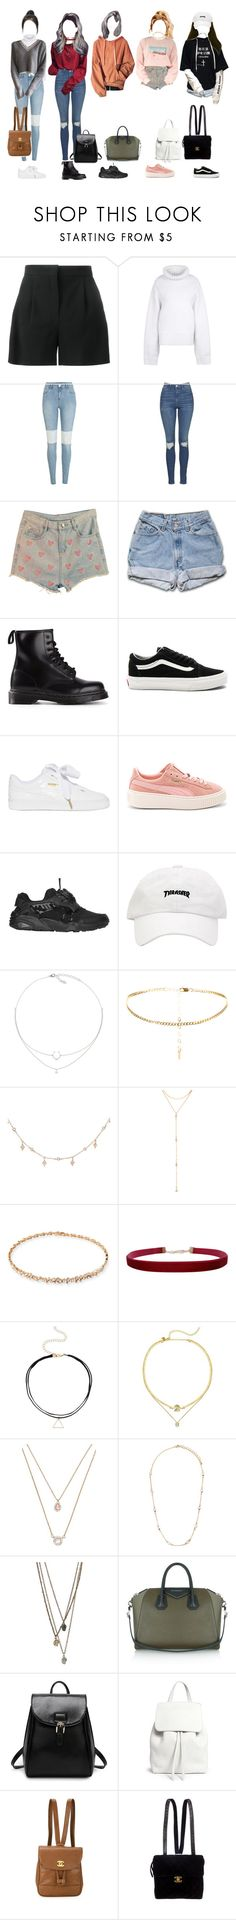 """""""Untitled #456"""" by xxeucliffexx ❤ liked on Polyvore featuring Alberta Ferretti, STELLA McCARTNEY, River Island, GET LOST, Topshop, Dr. Martens, Vans, Puma, Luna Skye and Fragments"""